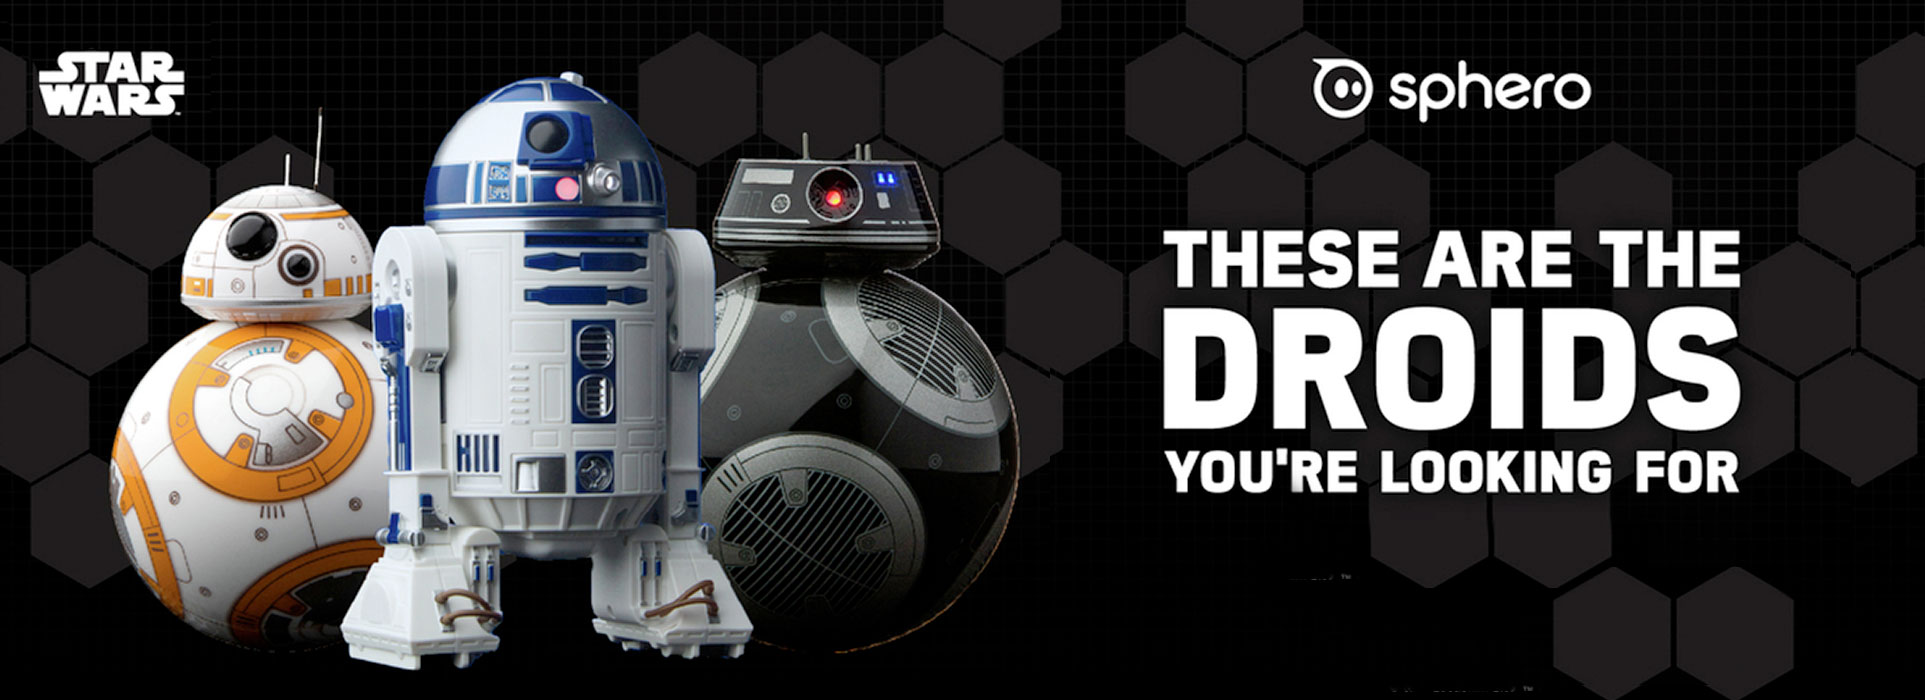 Star Wars - Sphero - BB9E - R2D2 - Droids